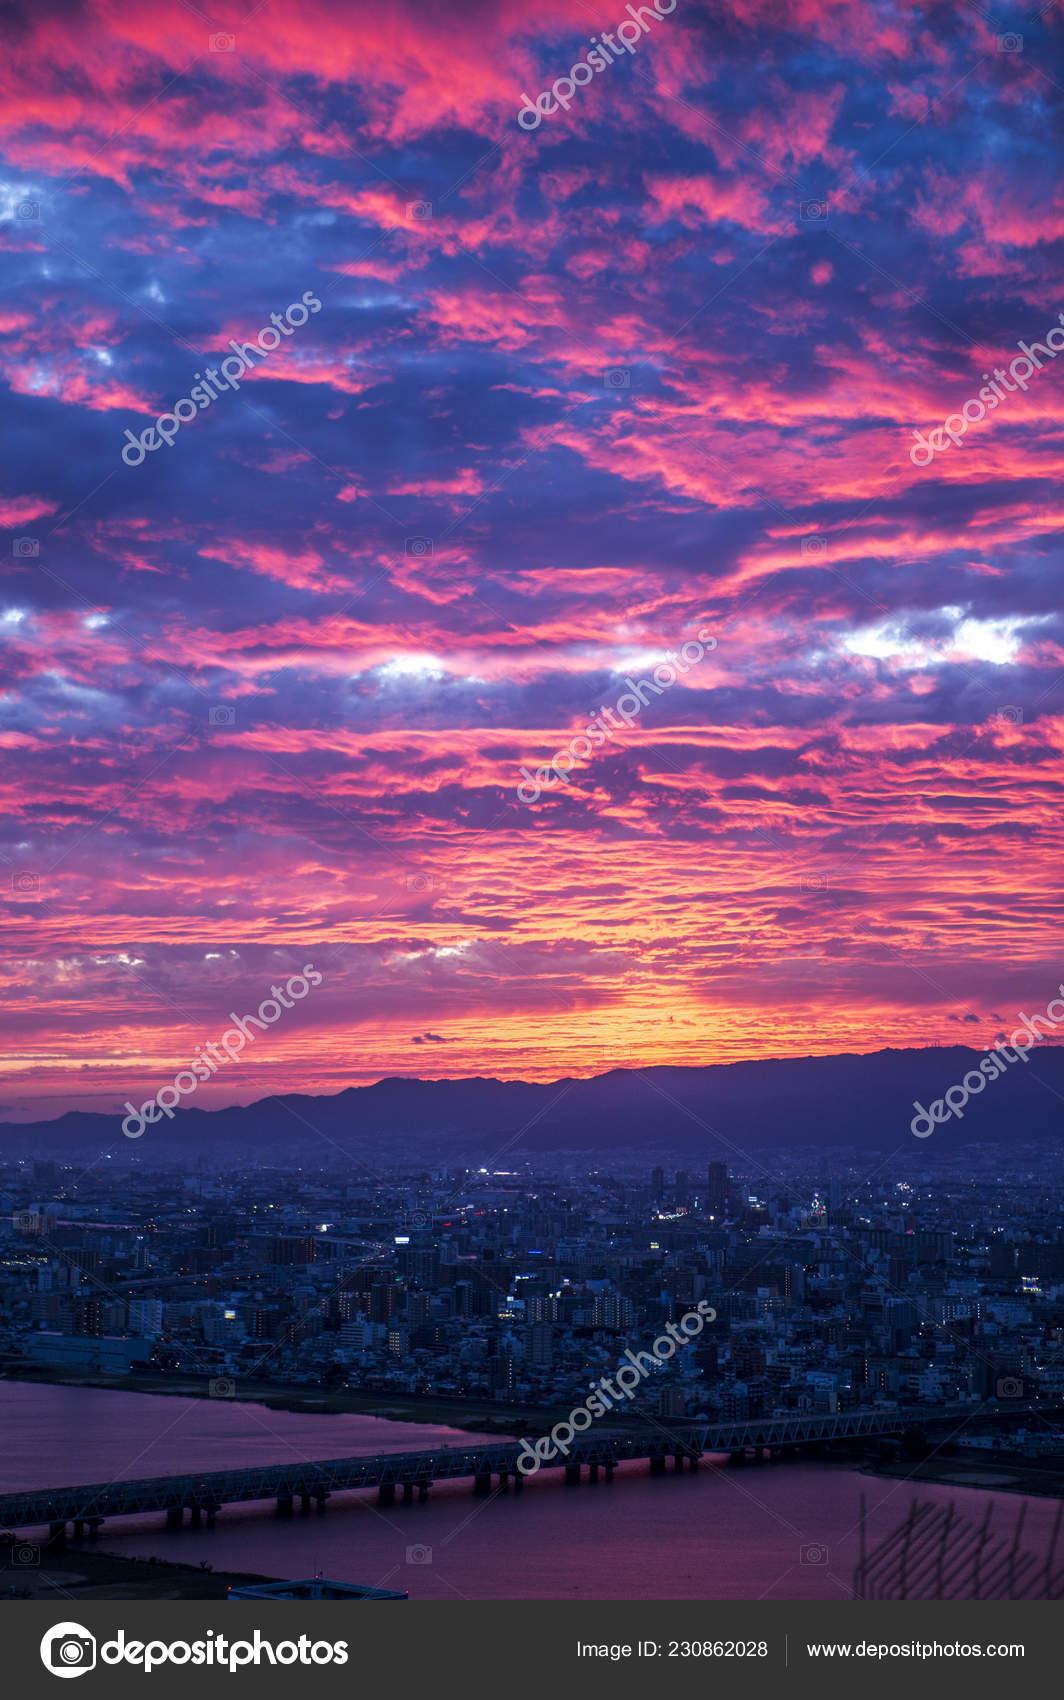 Sunset Pink Clouds Osaka Prefecture Japan Asia Stock Photo C Imagemore 230862028